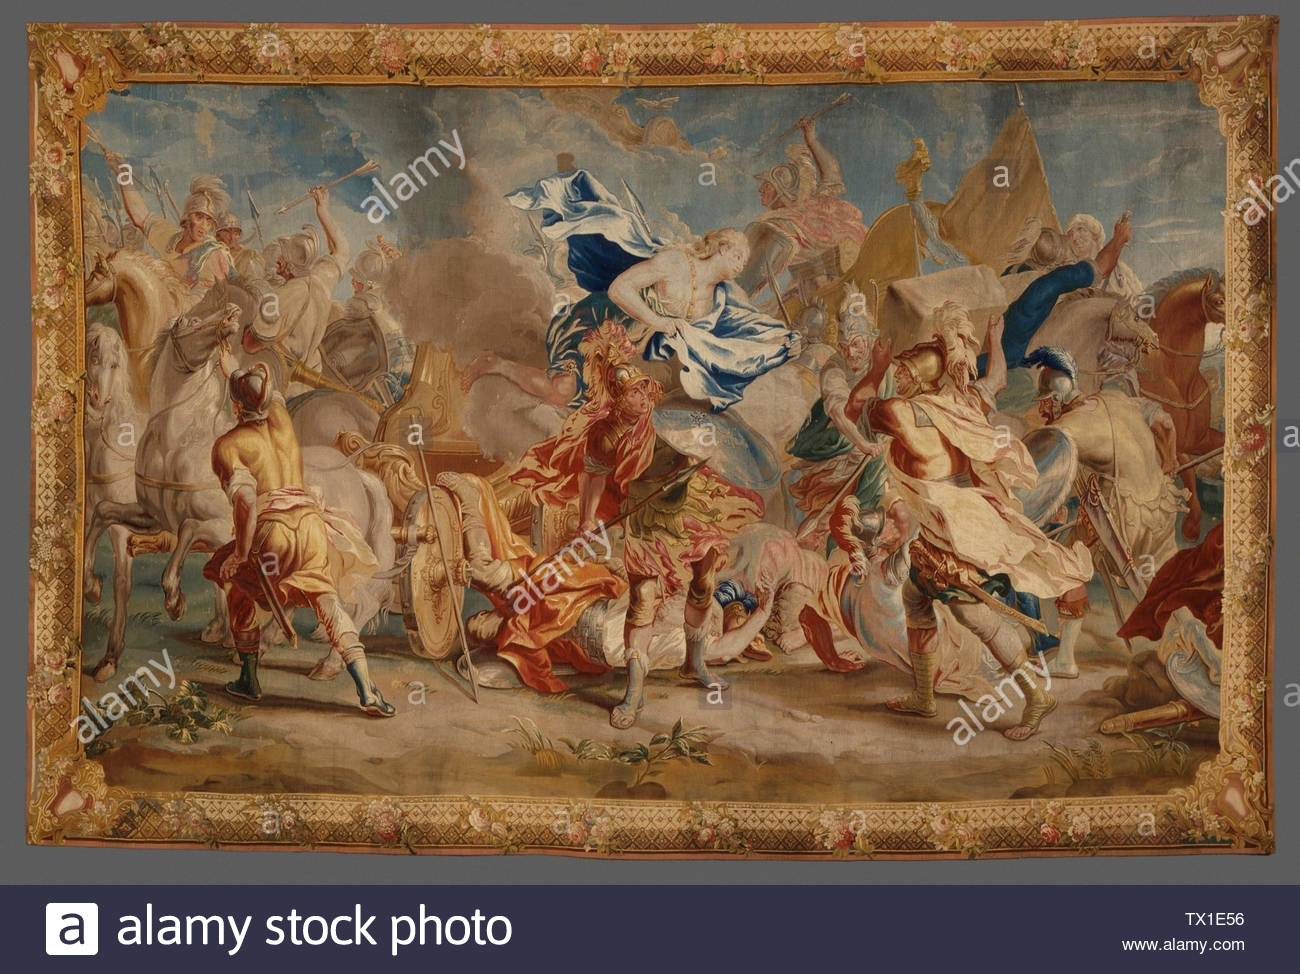 'Combat between Menelaus and Paris; English:  Belgium, Brussels, circa 1740 Textiles; tapestries Wool and silk tapestry weave Gift of J. Paul Getty (51.36.4) Costume and Textiles; circa 1740 date QS:P571,+1740-00-00T00:00:00Z/9,P1480,Q5727902; ' - Stock Image